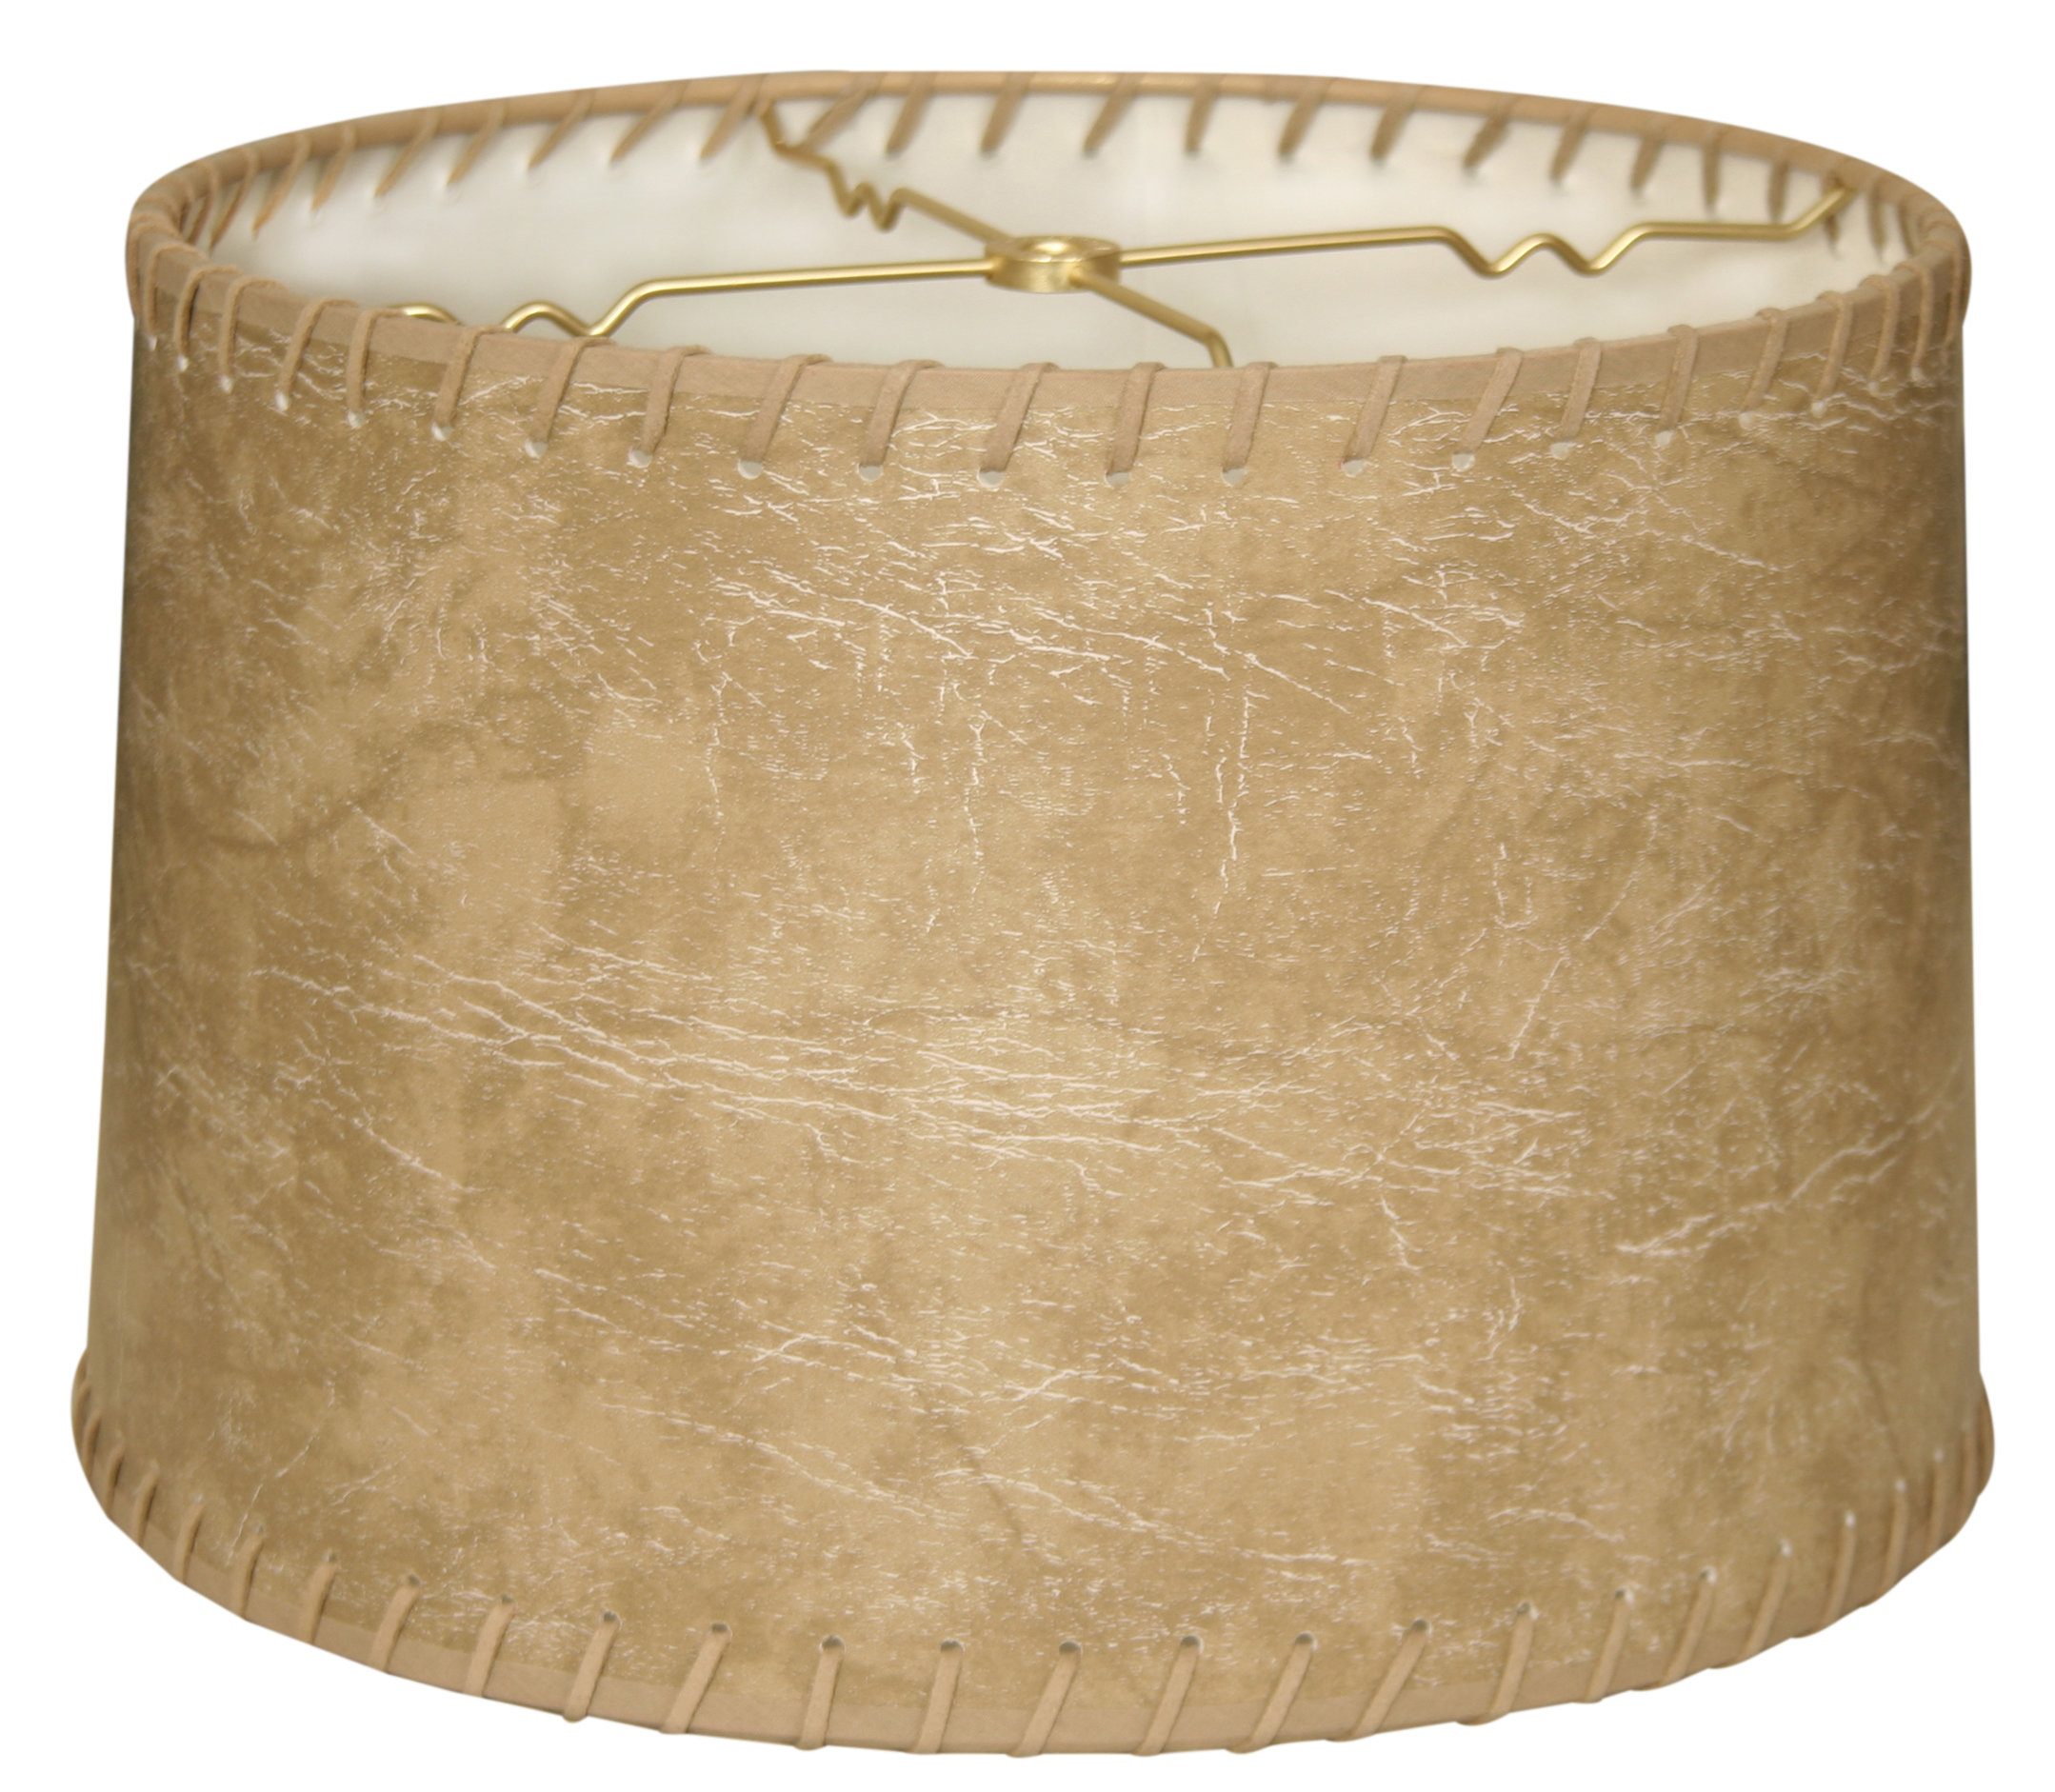 royaldesigns timeless linen drum lamp shade brass accent table cool end ideas pier white wicker furniture torchiere floor plain small side chairs for living room modern spaces